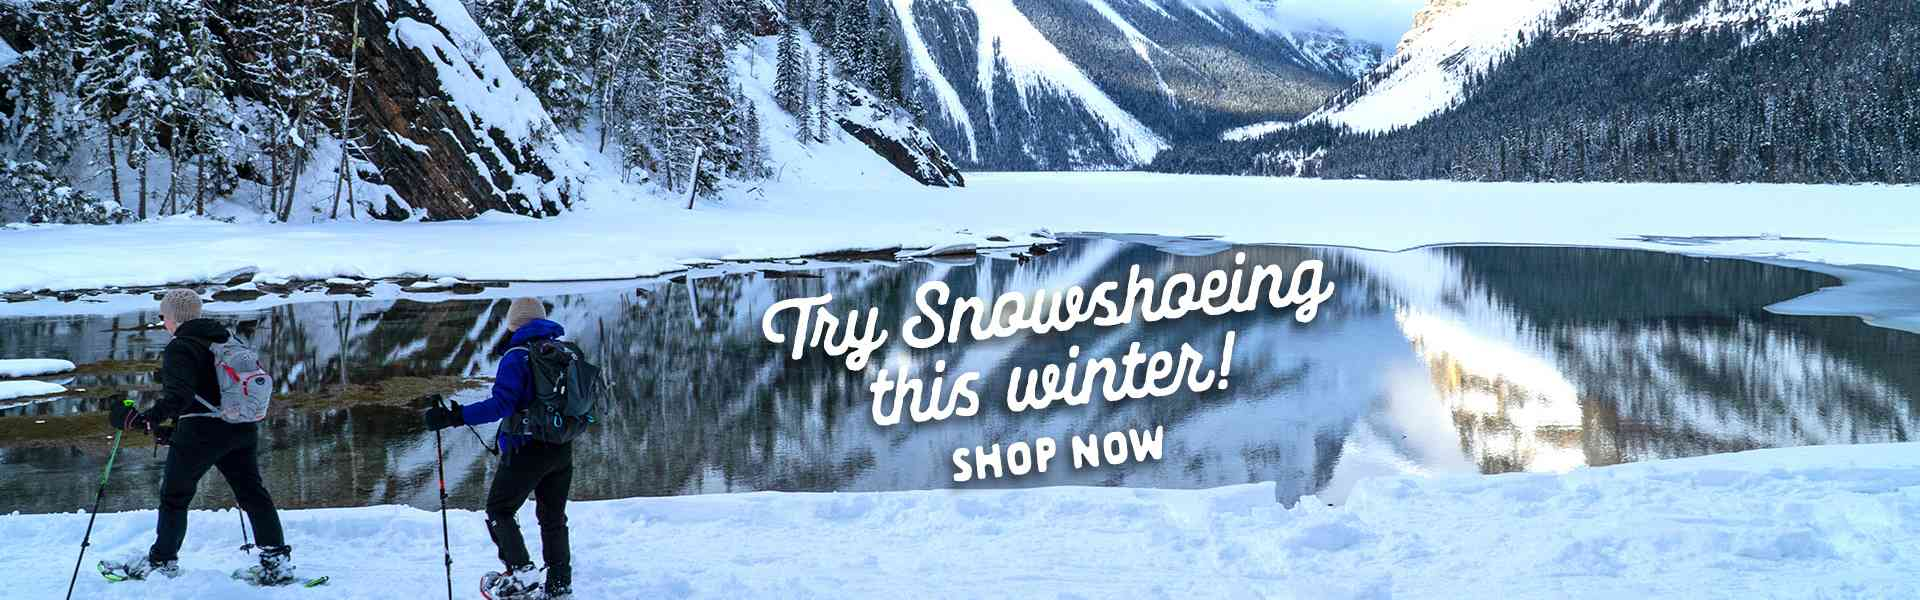 https://campers-village.com/snow/snowshoeing.html#p=1